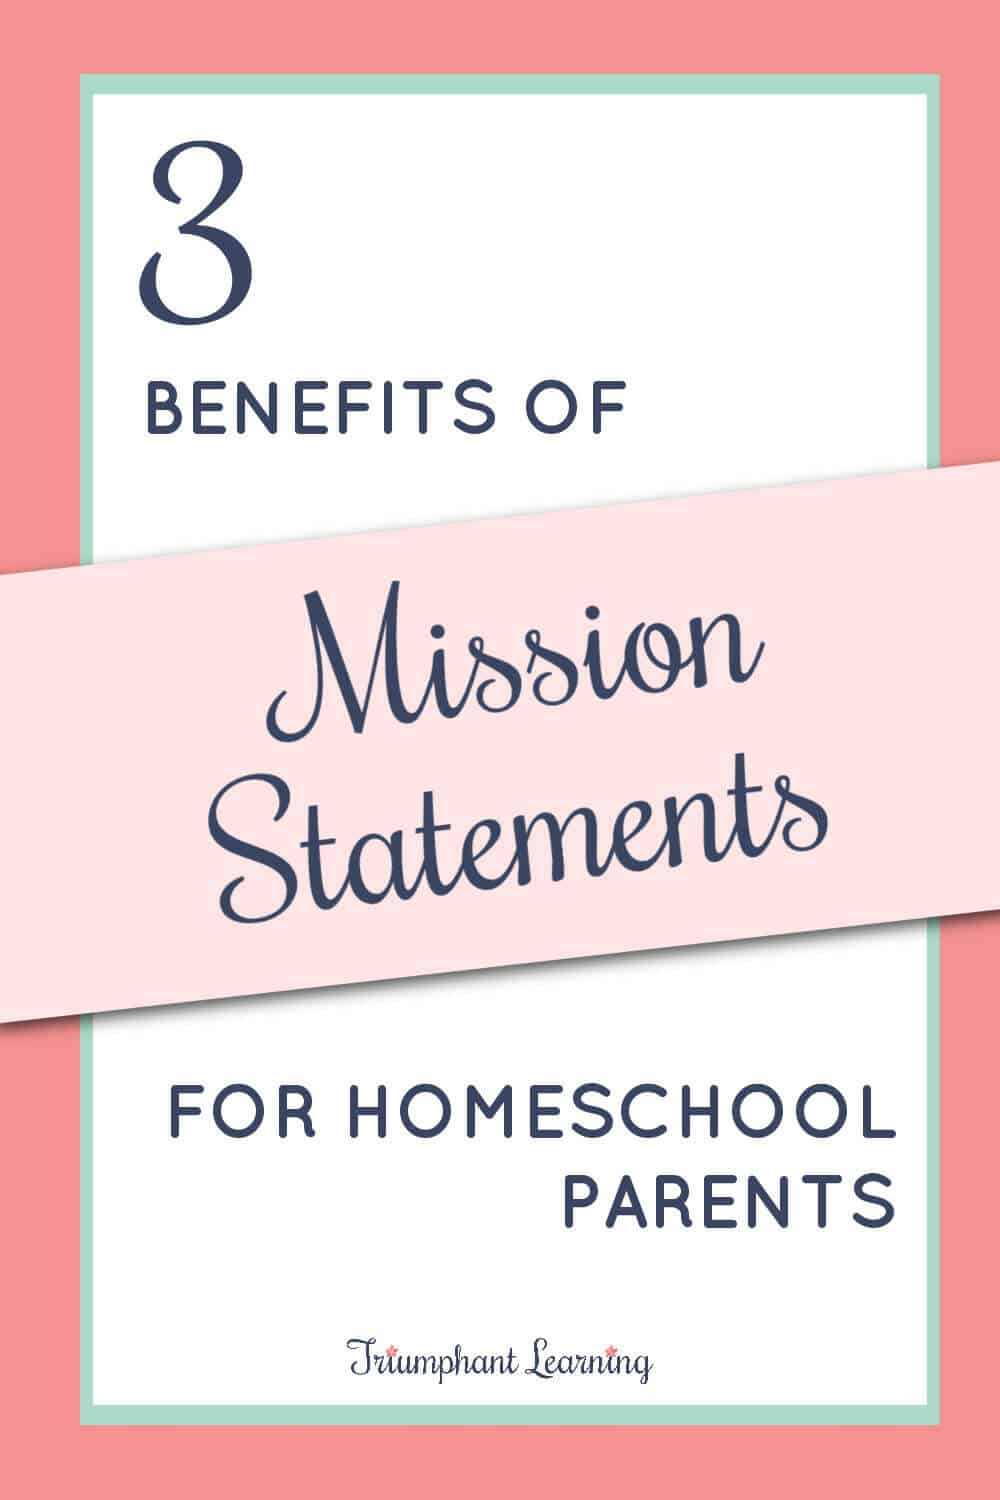 Learn three benefits of mission statements that will inspire you to write them for you, your family, and your homeschool. via @TriLearning